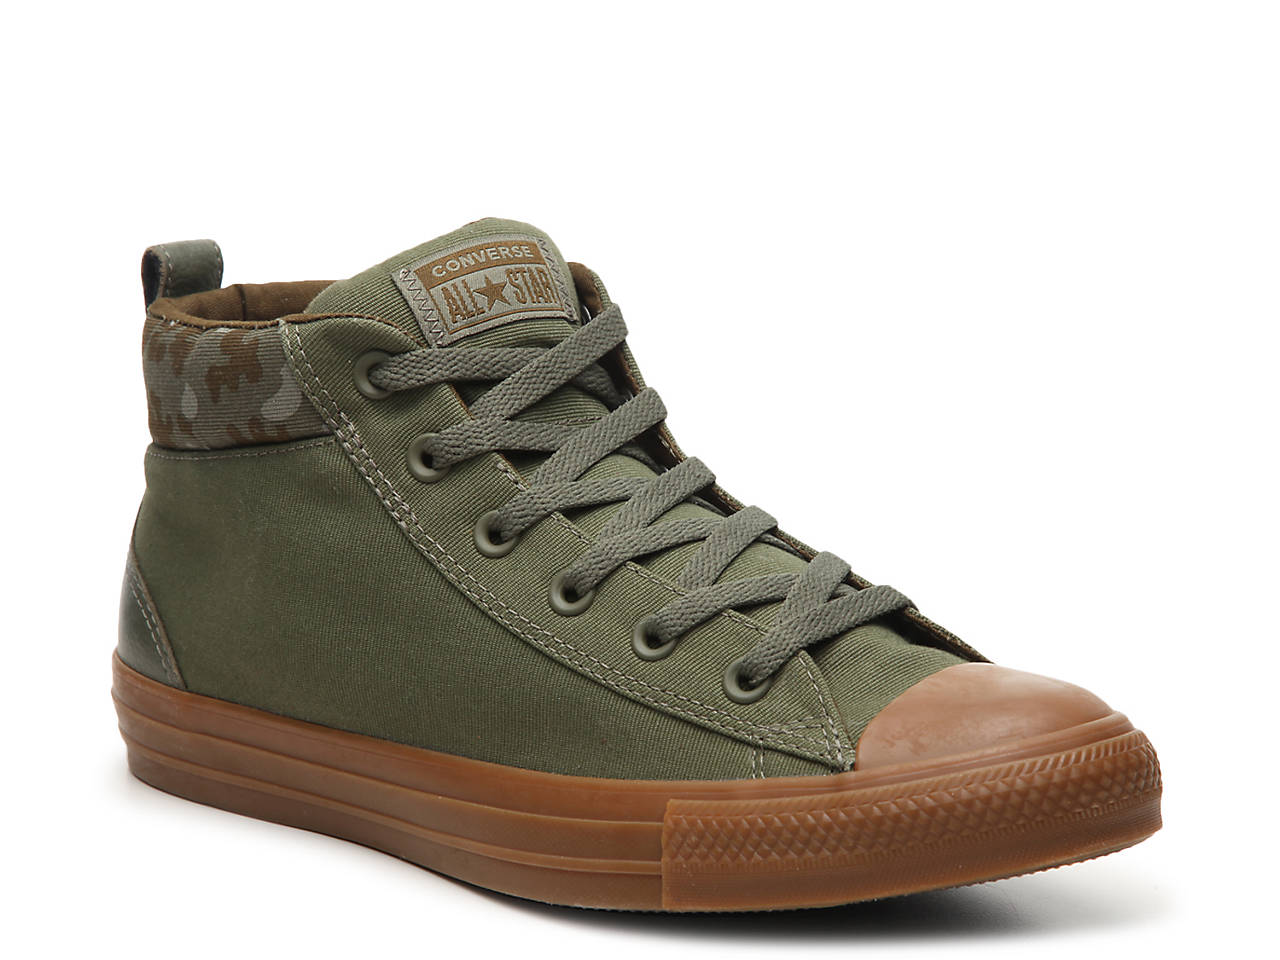 8eacac36c02812 Converse Chuck Taylor All Star Street Camo High-Top Sneaker - Men s Men s  Shoes